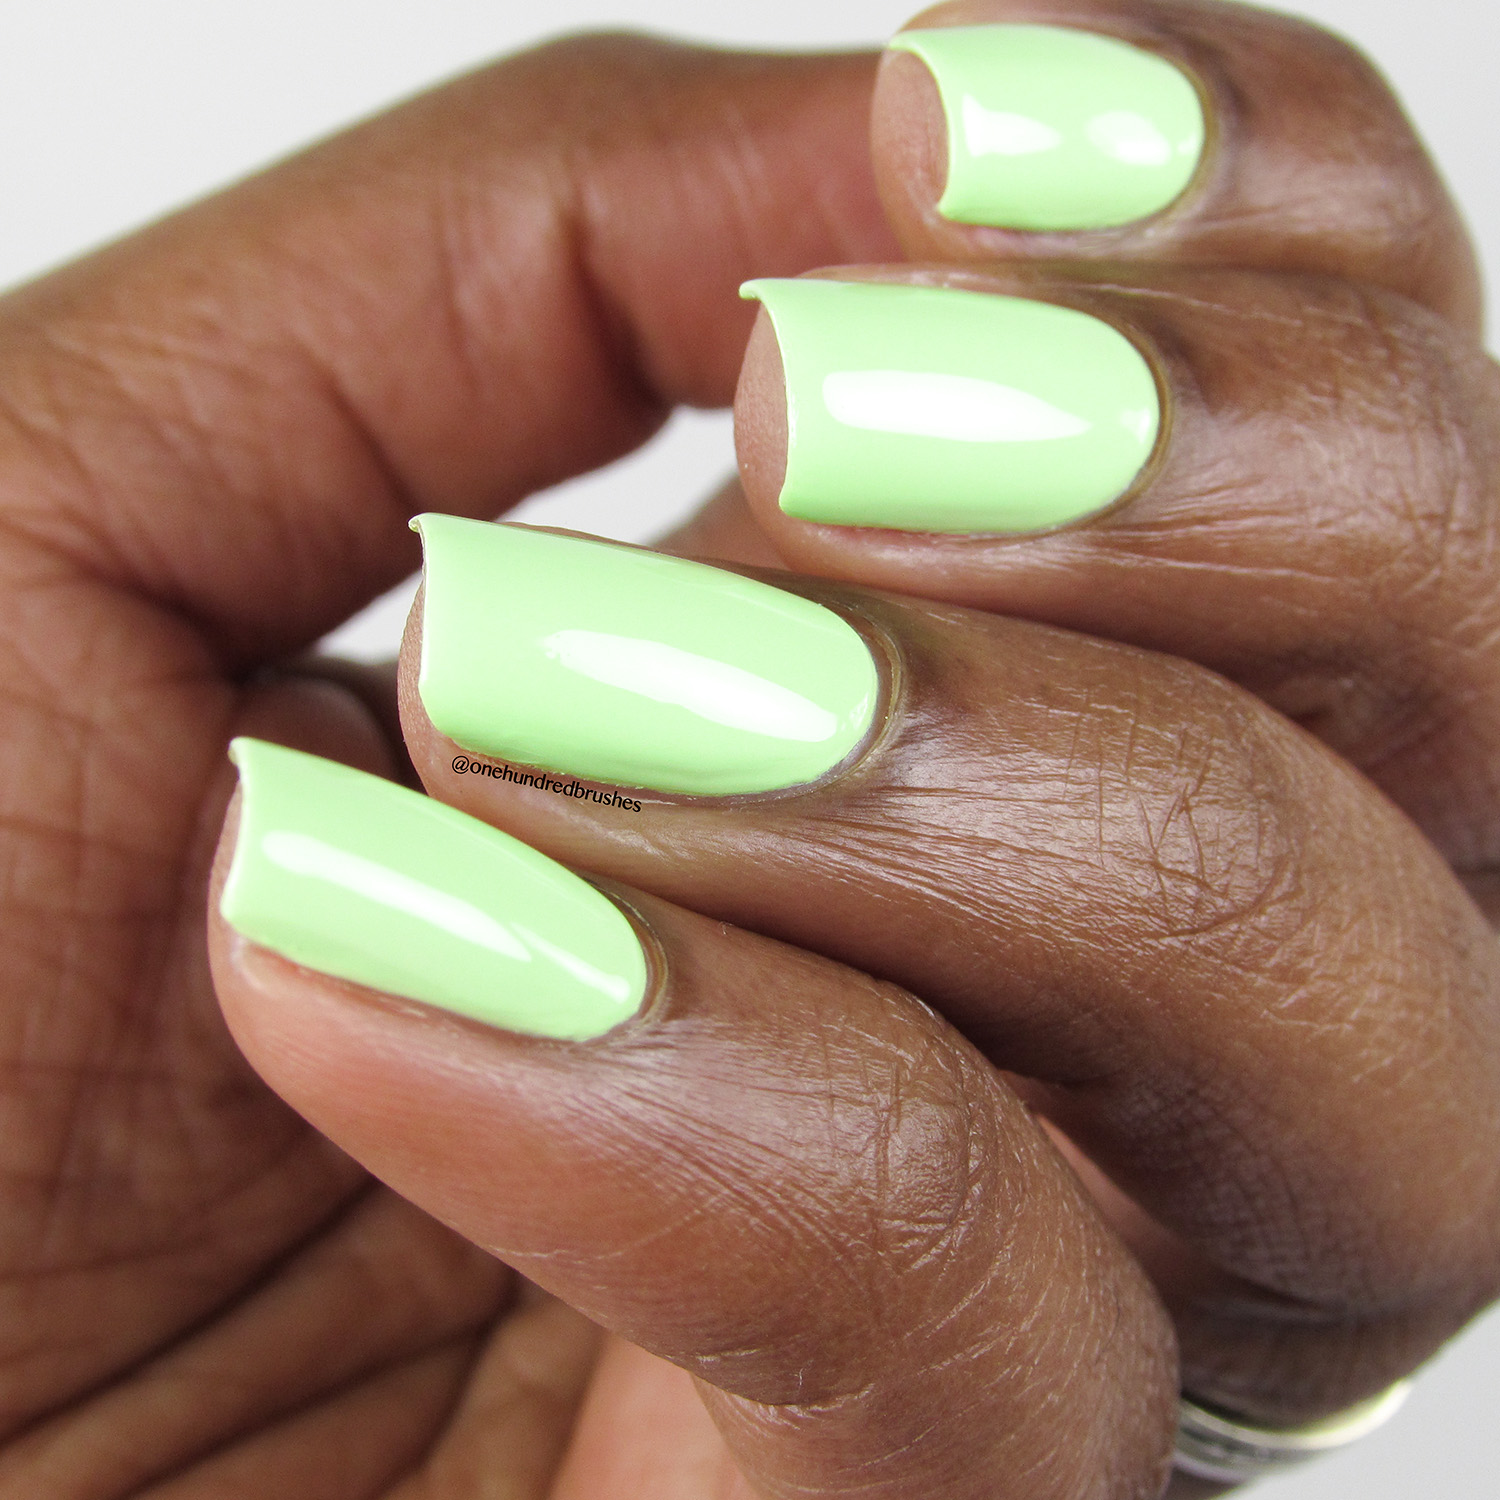 Sublime - Heroine NYC - Angle 2 - The Neons - lime green